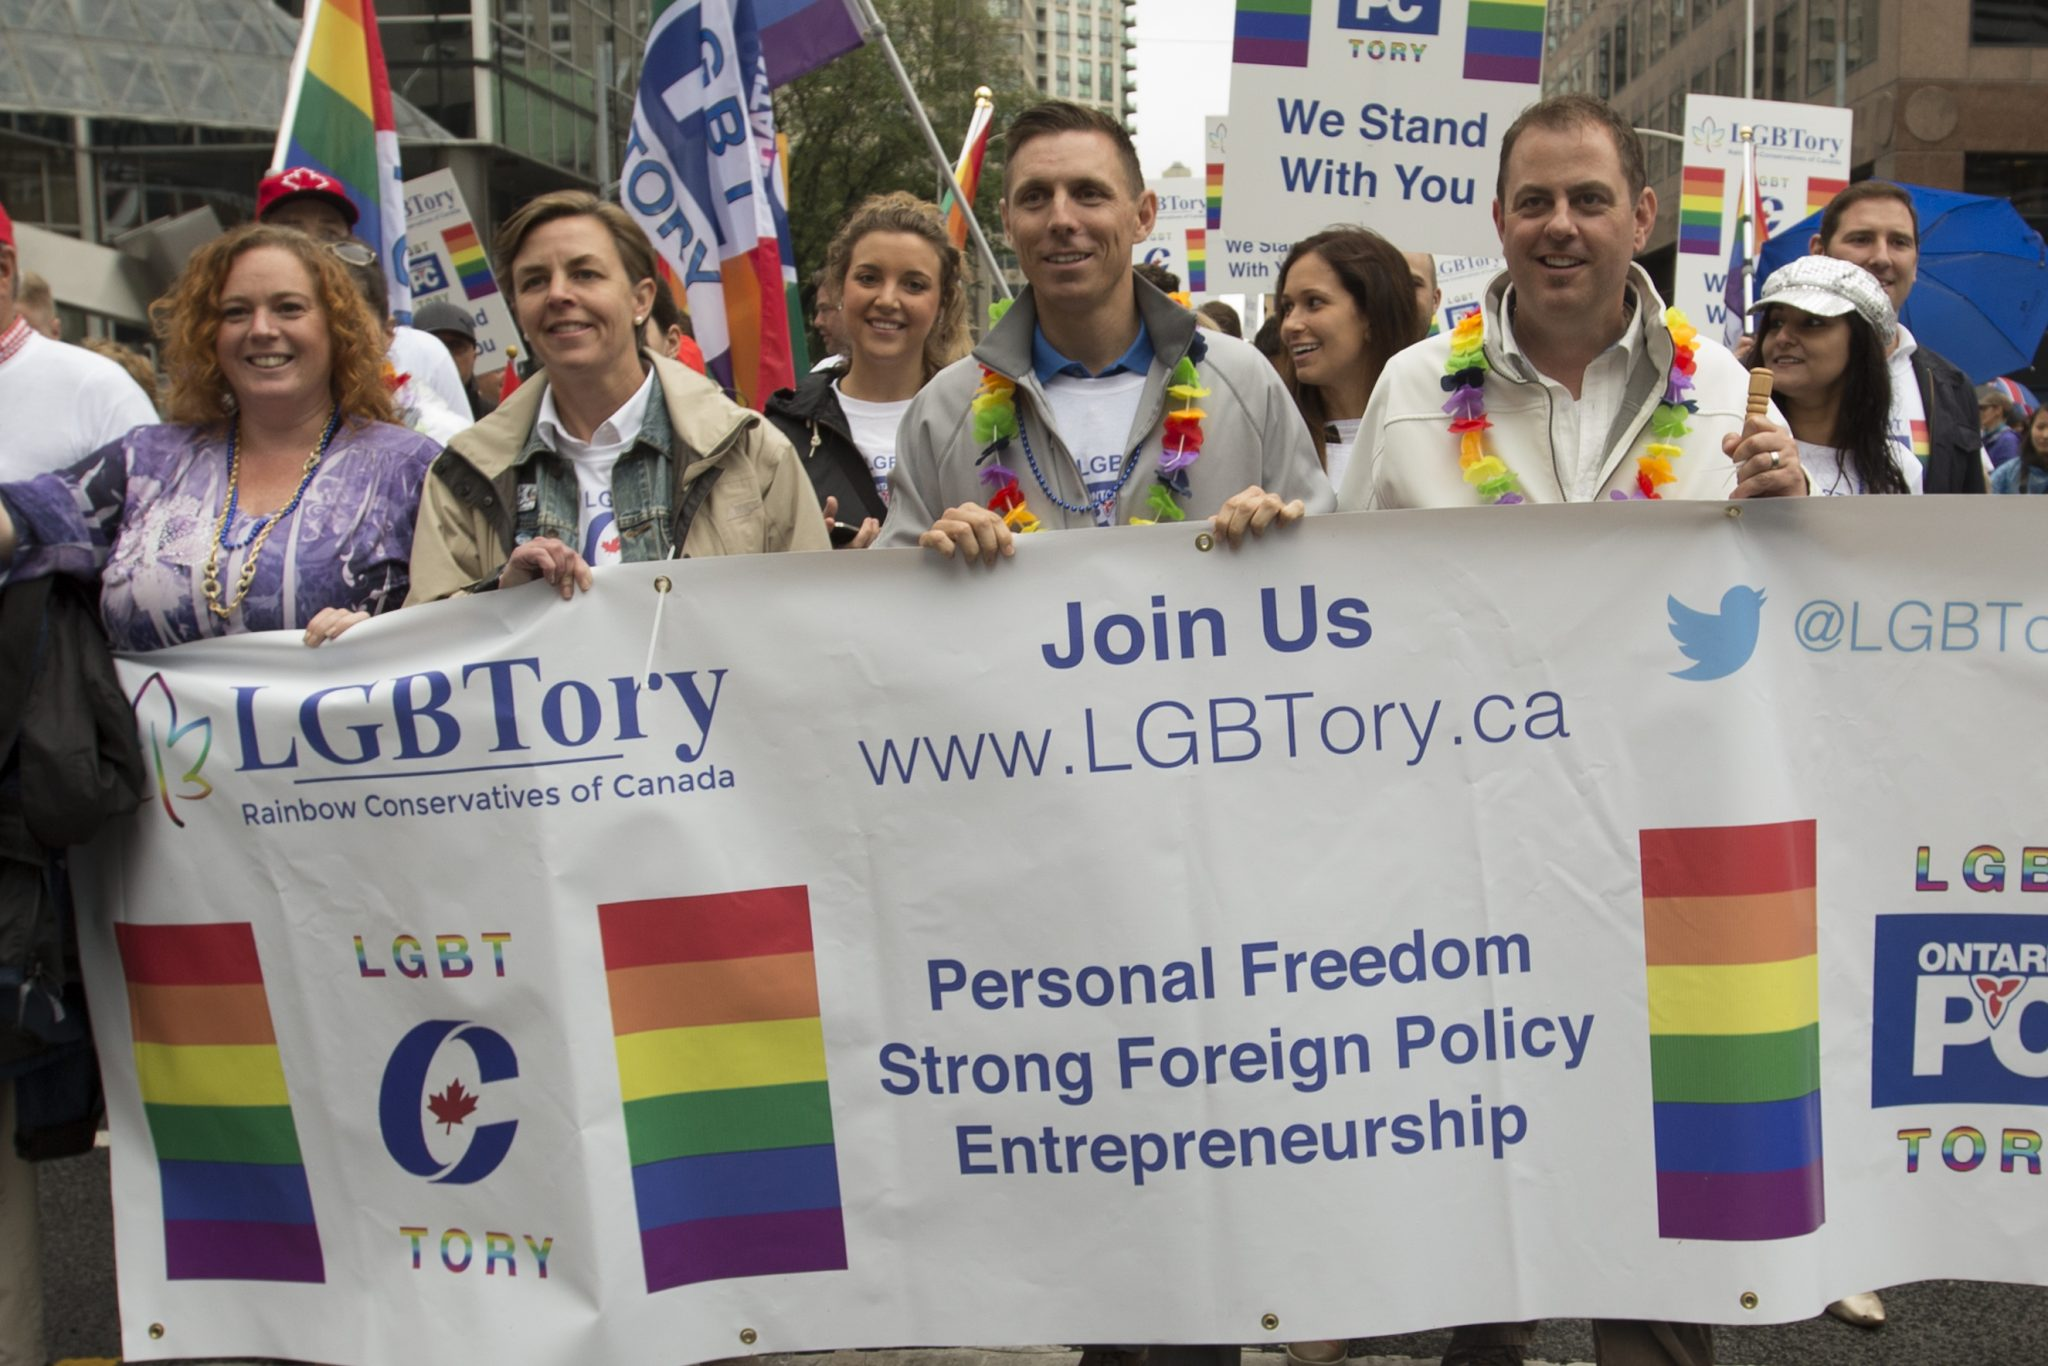 Meet LGBTory, the advocacy group changing conservative politics and boosting Patrick Brown